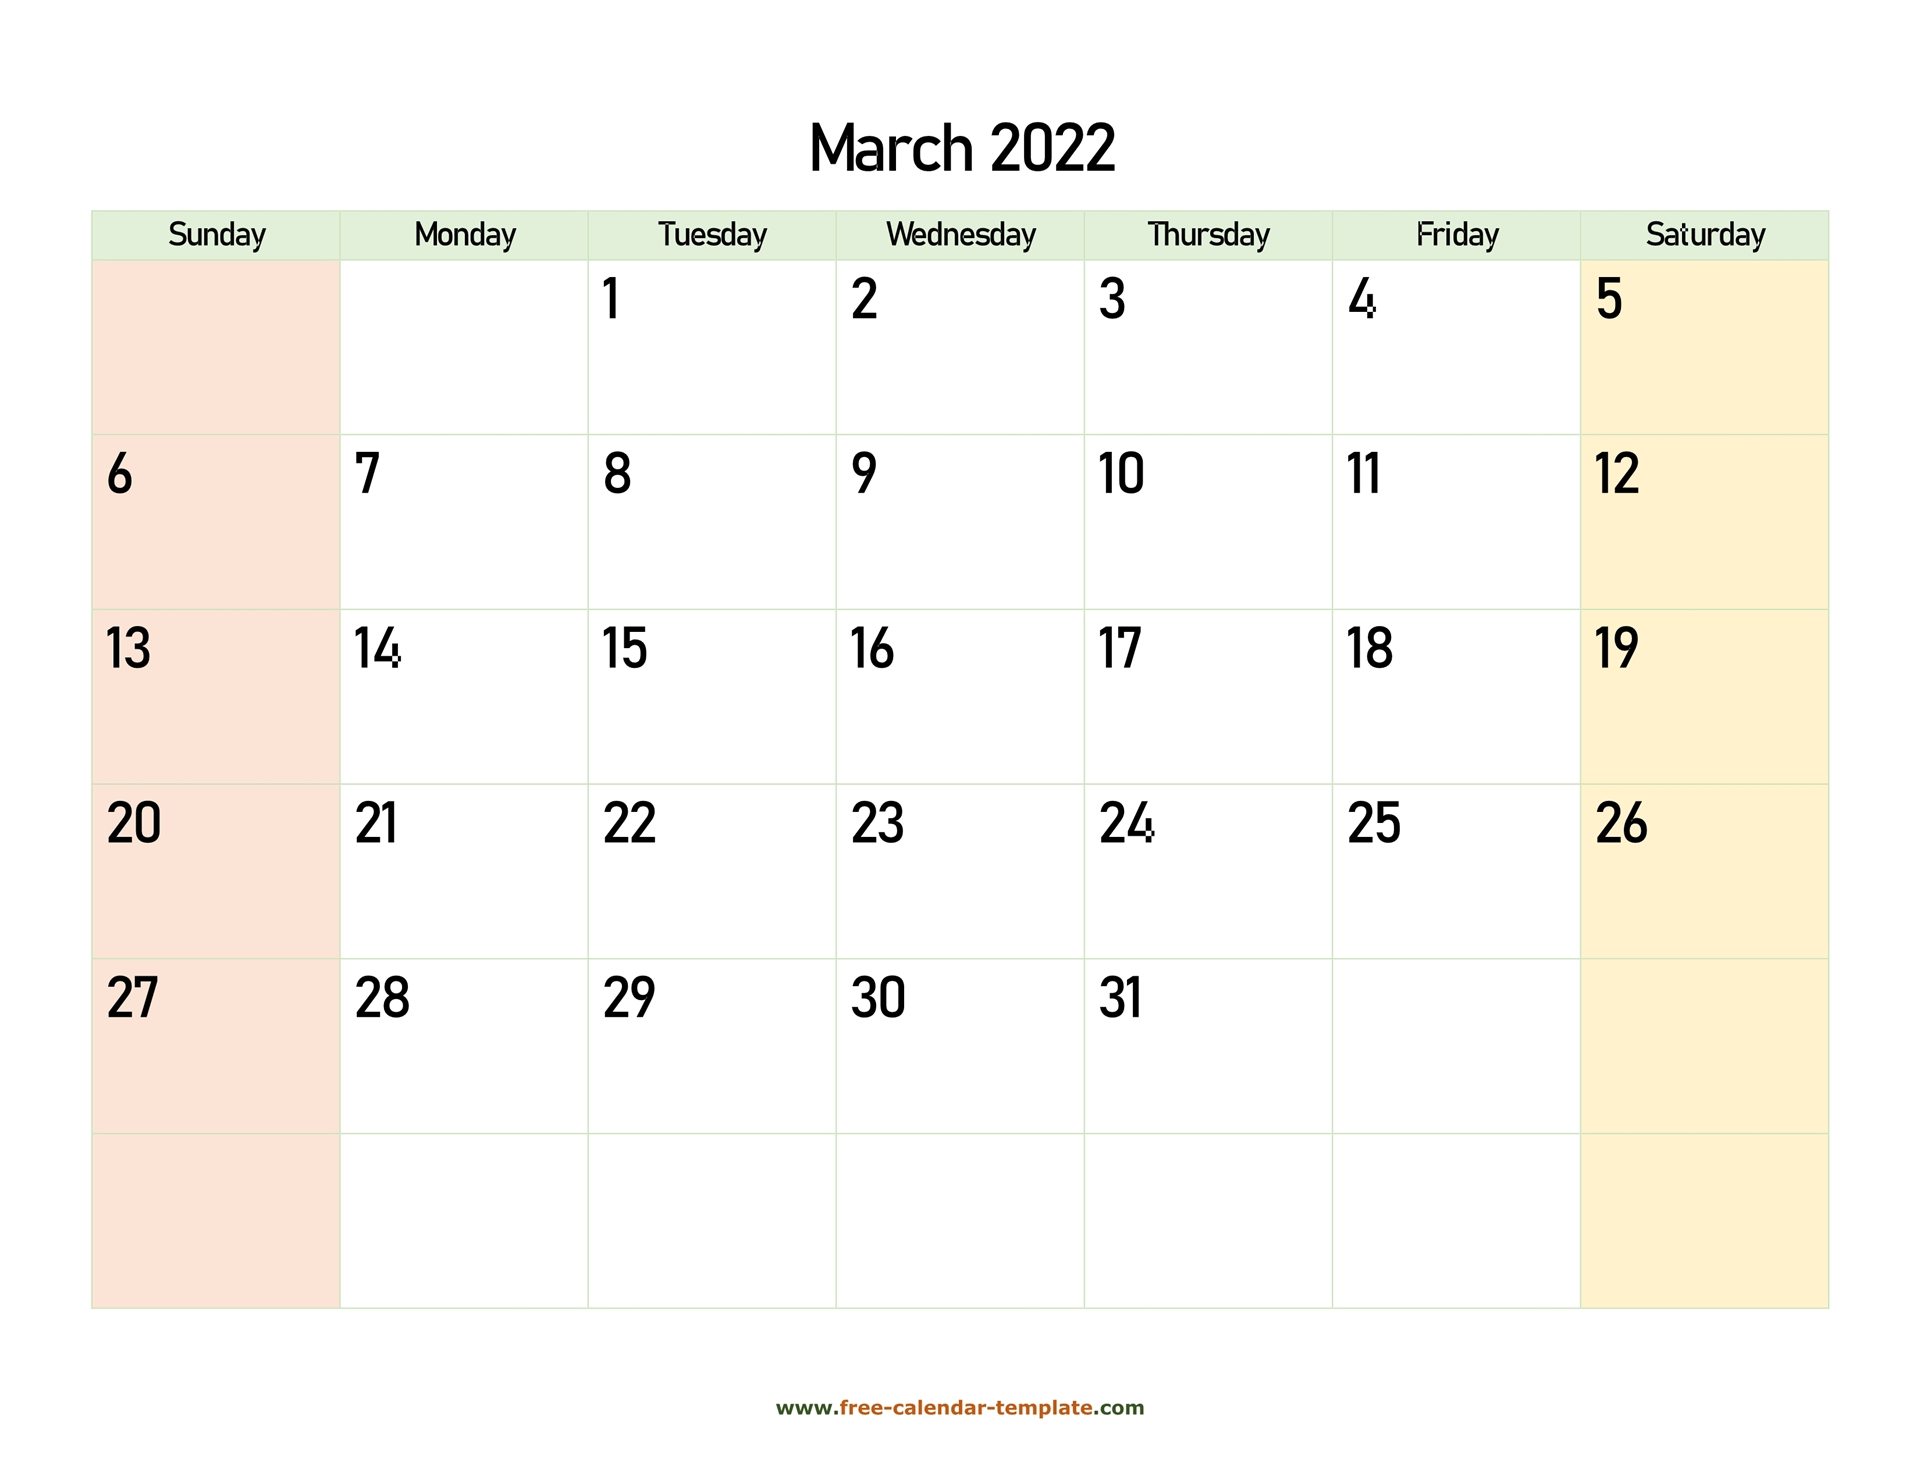 March 2022 Calendar Printable With Coloring On Weekend Throughout Caladar For The Mont Of March 2022